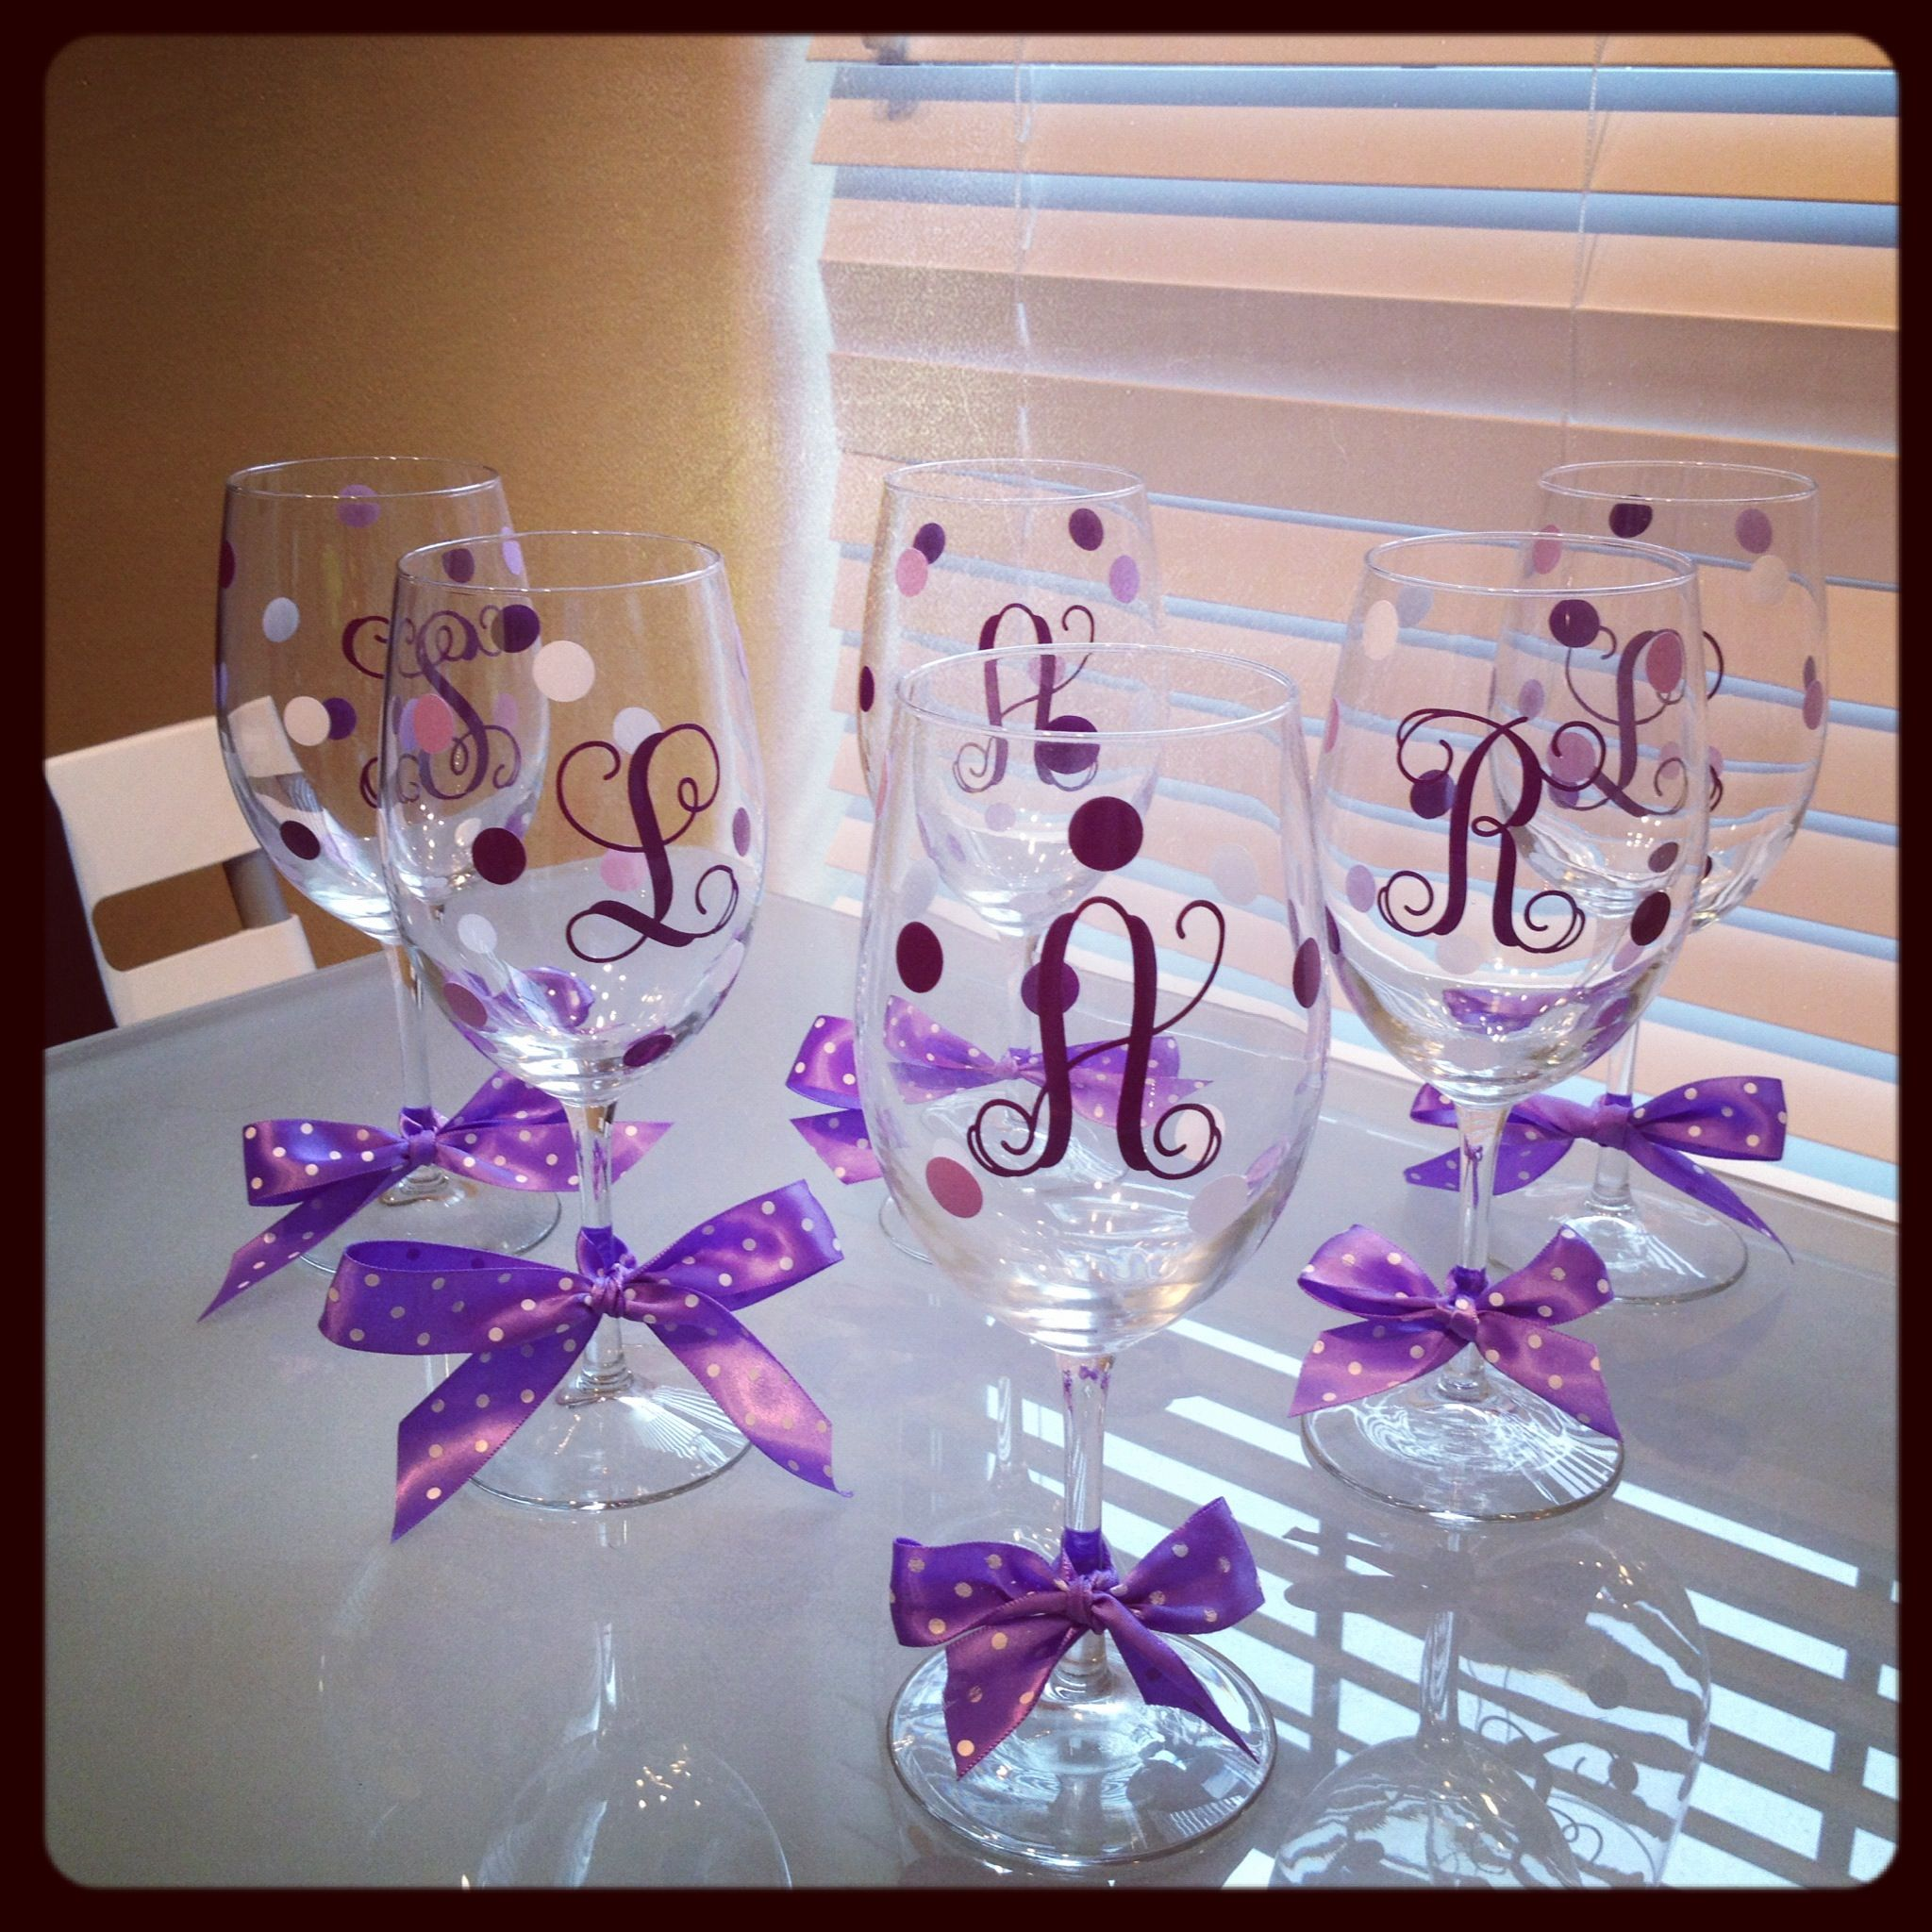 Easy do it yourself gift and in any color to mach your wedding easy do it yourself gift and in any color to mach your wedding solutioingenieria Choice Image